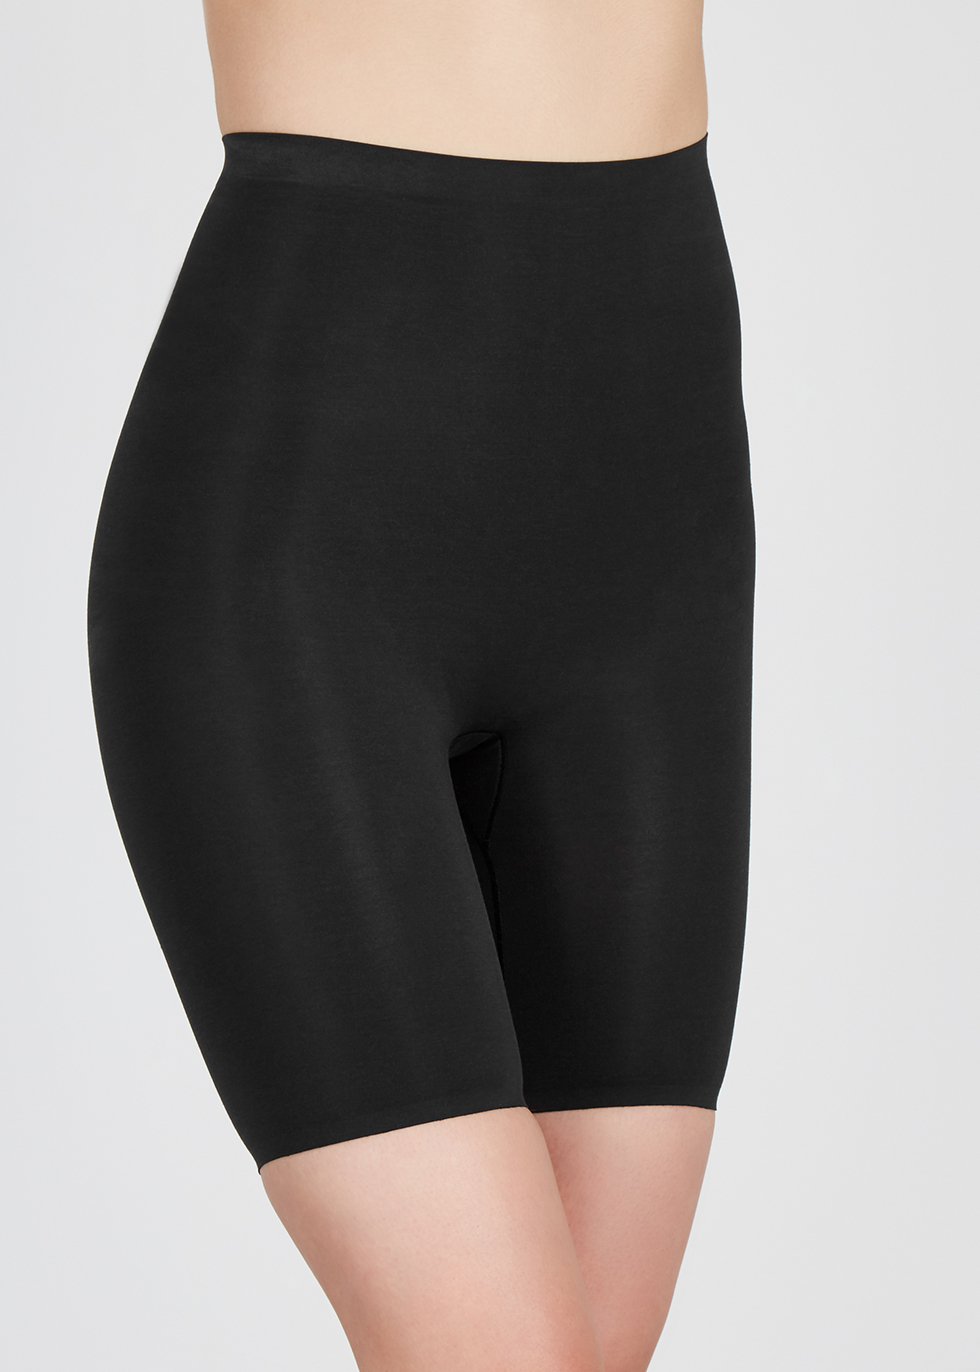 Beyond Naked black shaping shorts - Wacoal